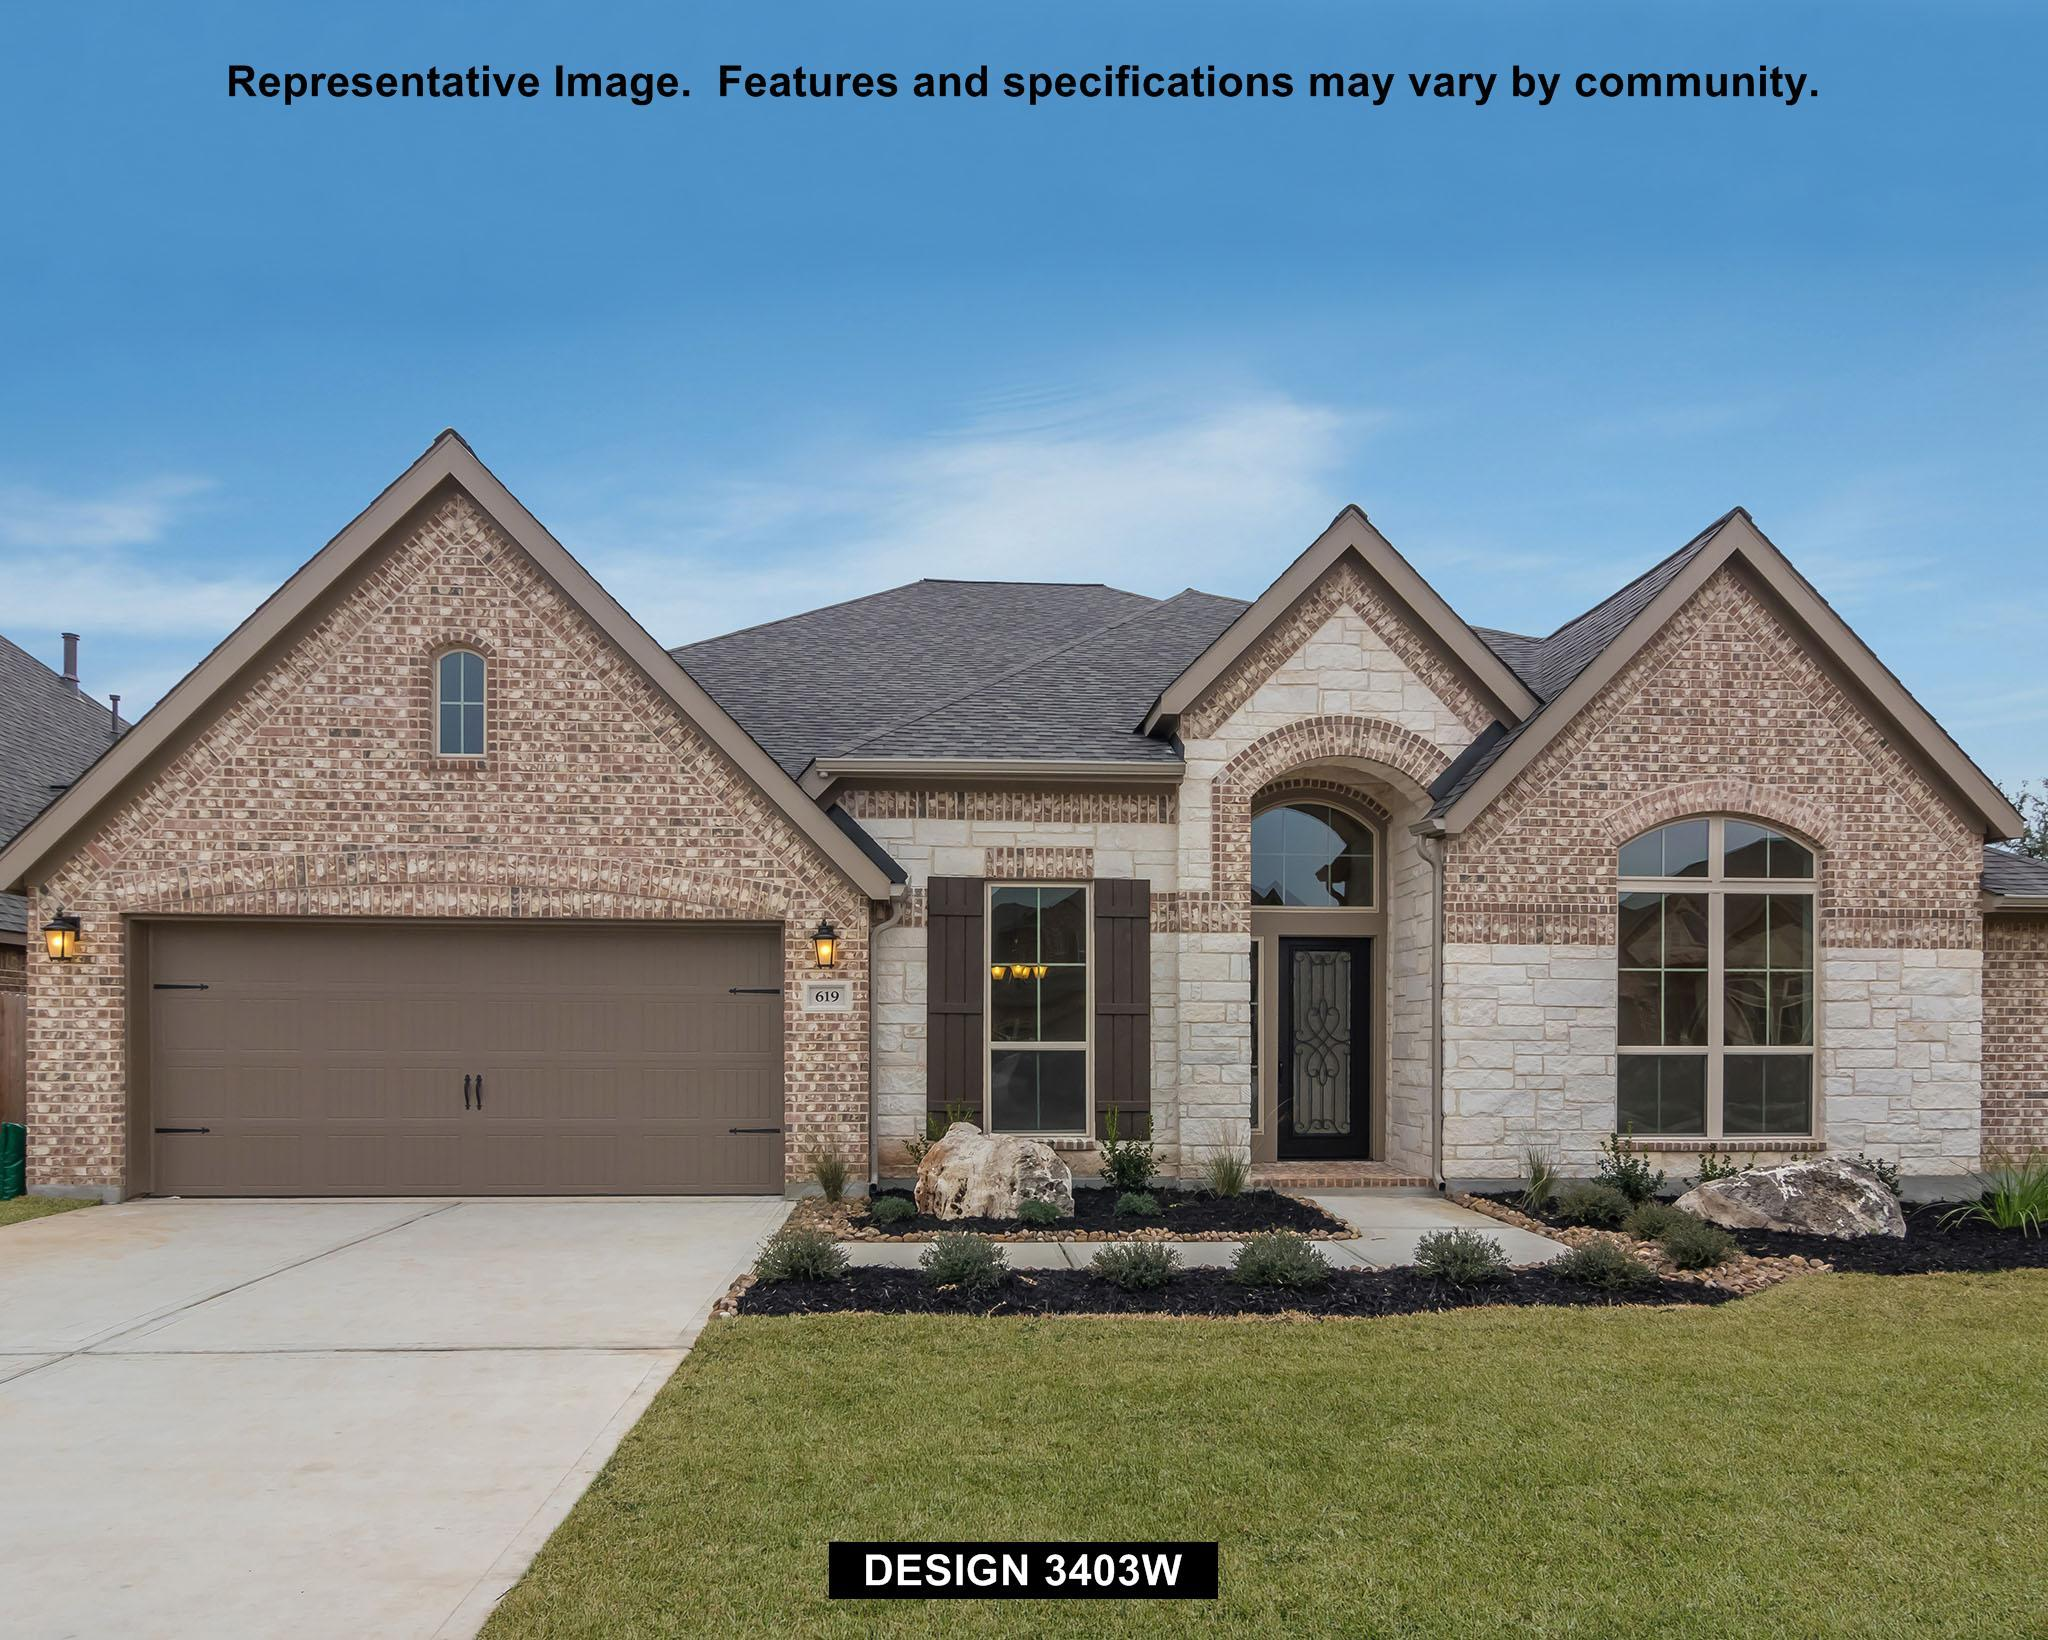 3403W - Cross Creek Ranch: Cross Creek Ranch 65': Fulshear, TX - Perry Homes